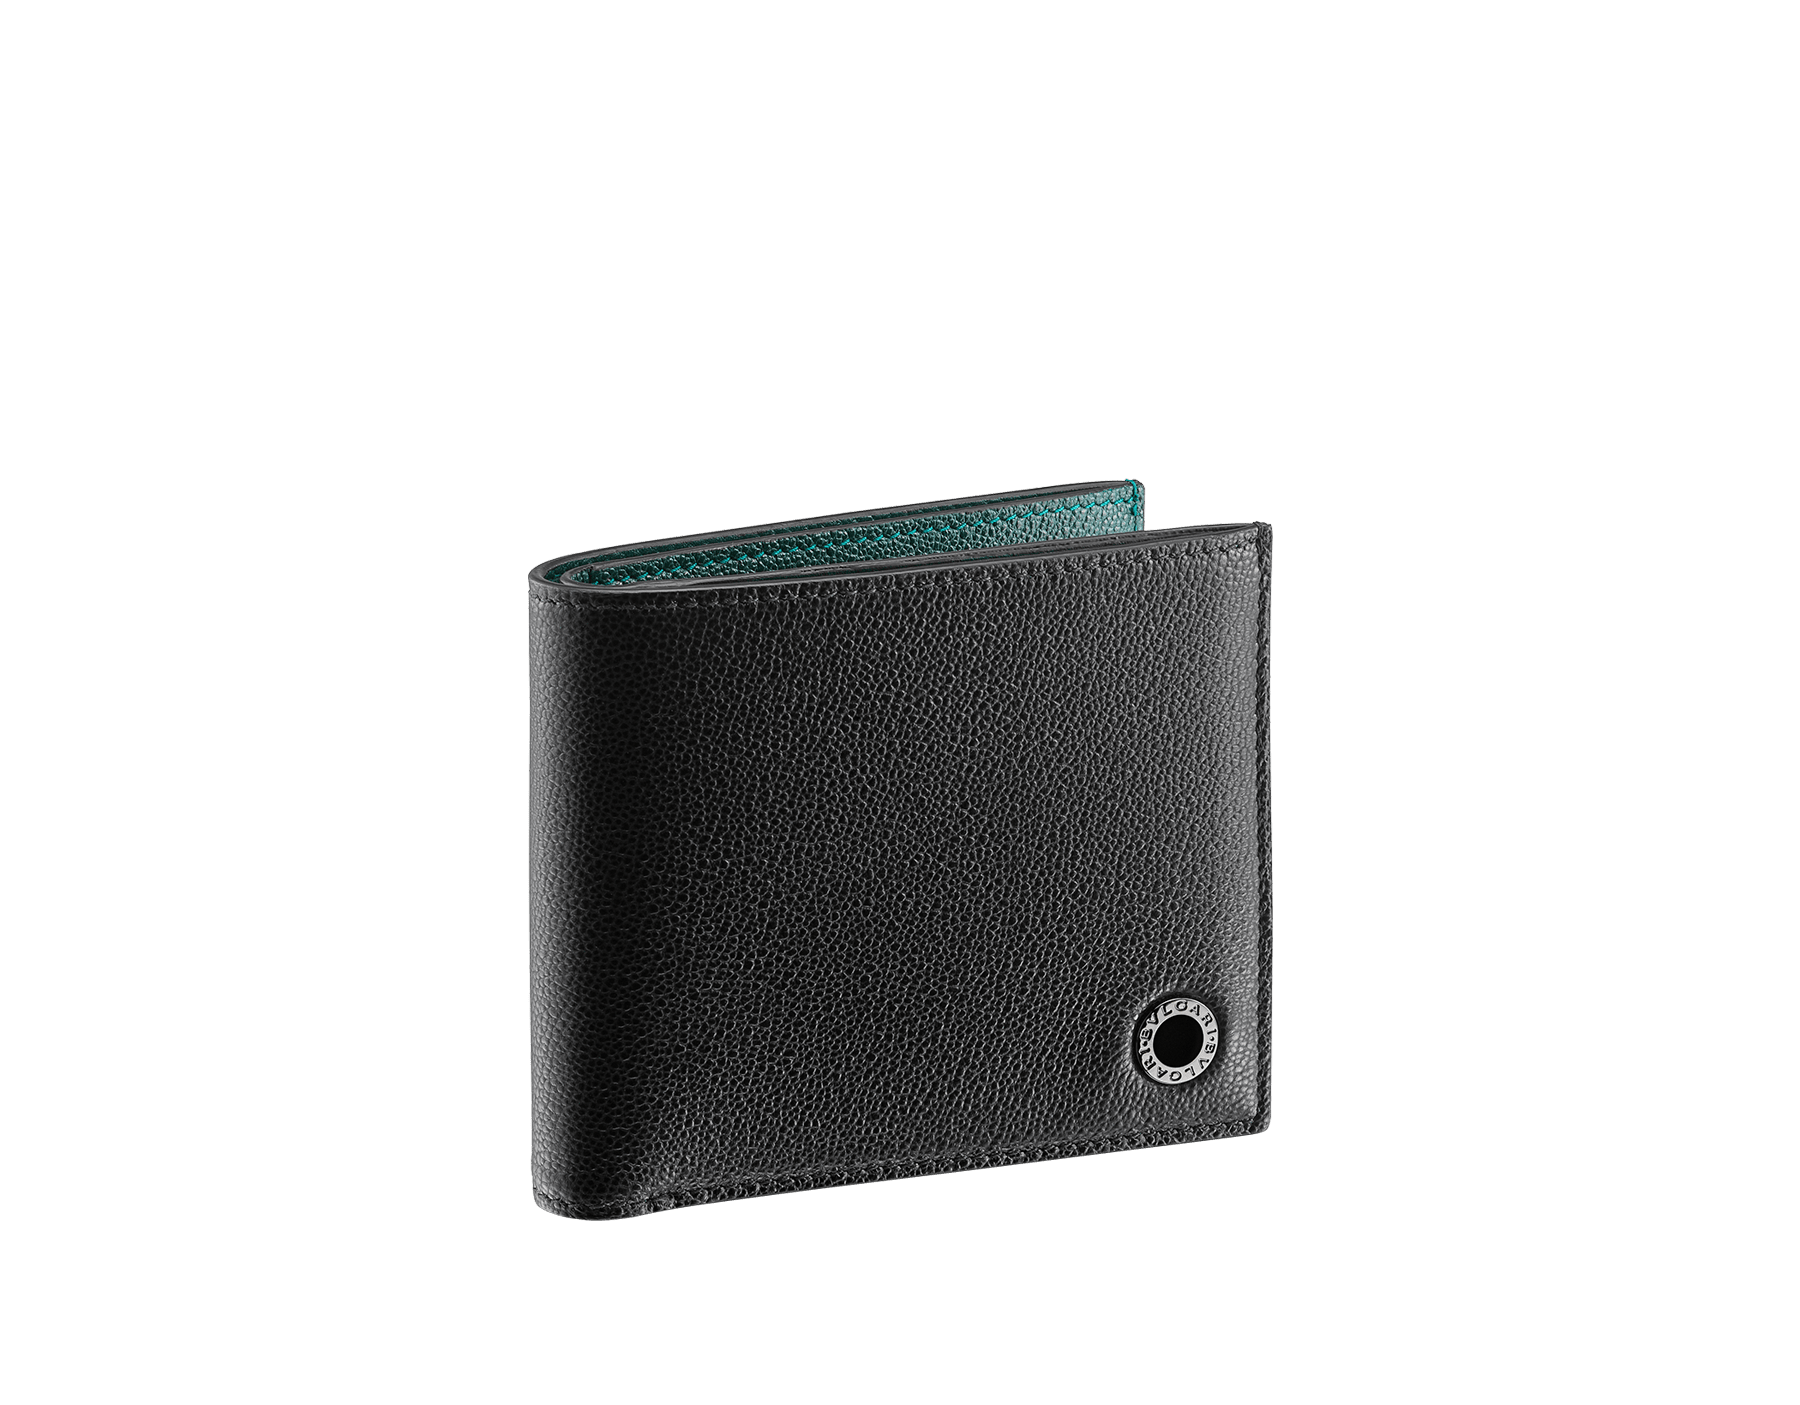 """""""BVLGARI BVLGARI"""" men's compact wallet in black and Forest Emerald green """"Urban"""" grain calf leather. Iconic logo embellishment in dark ruthenium-plated brass with black enameling. BBM-WLT2FASYM image 1"""